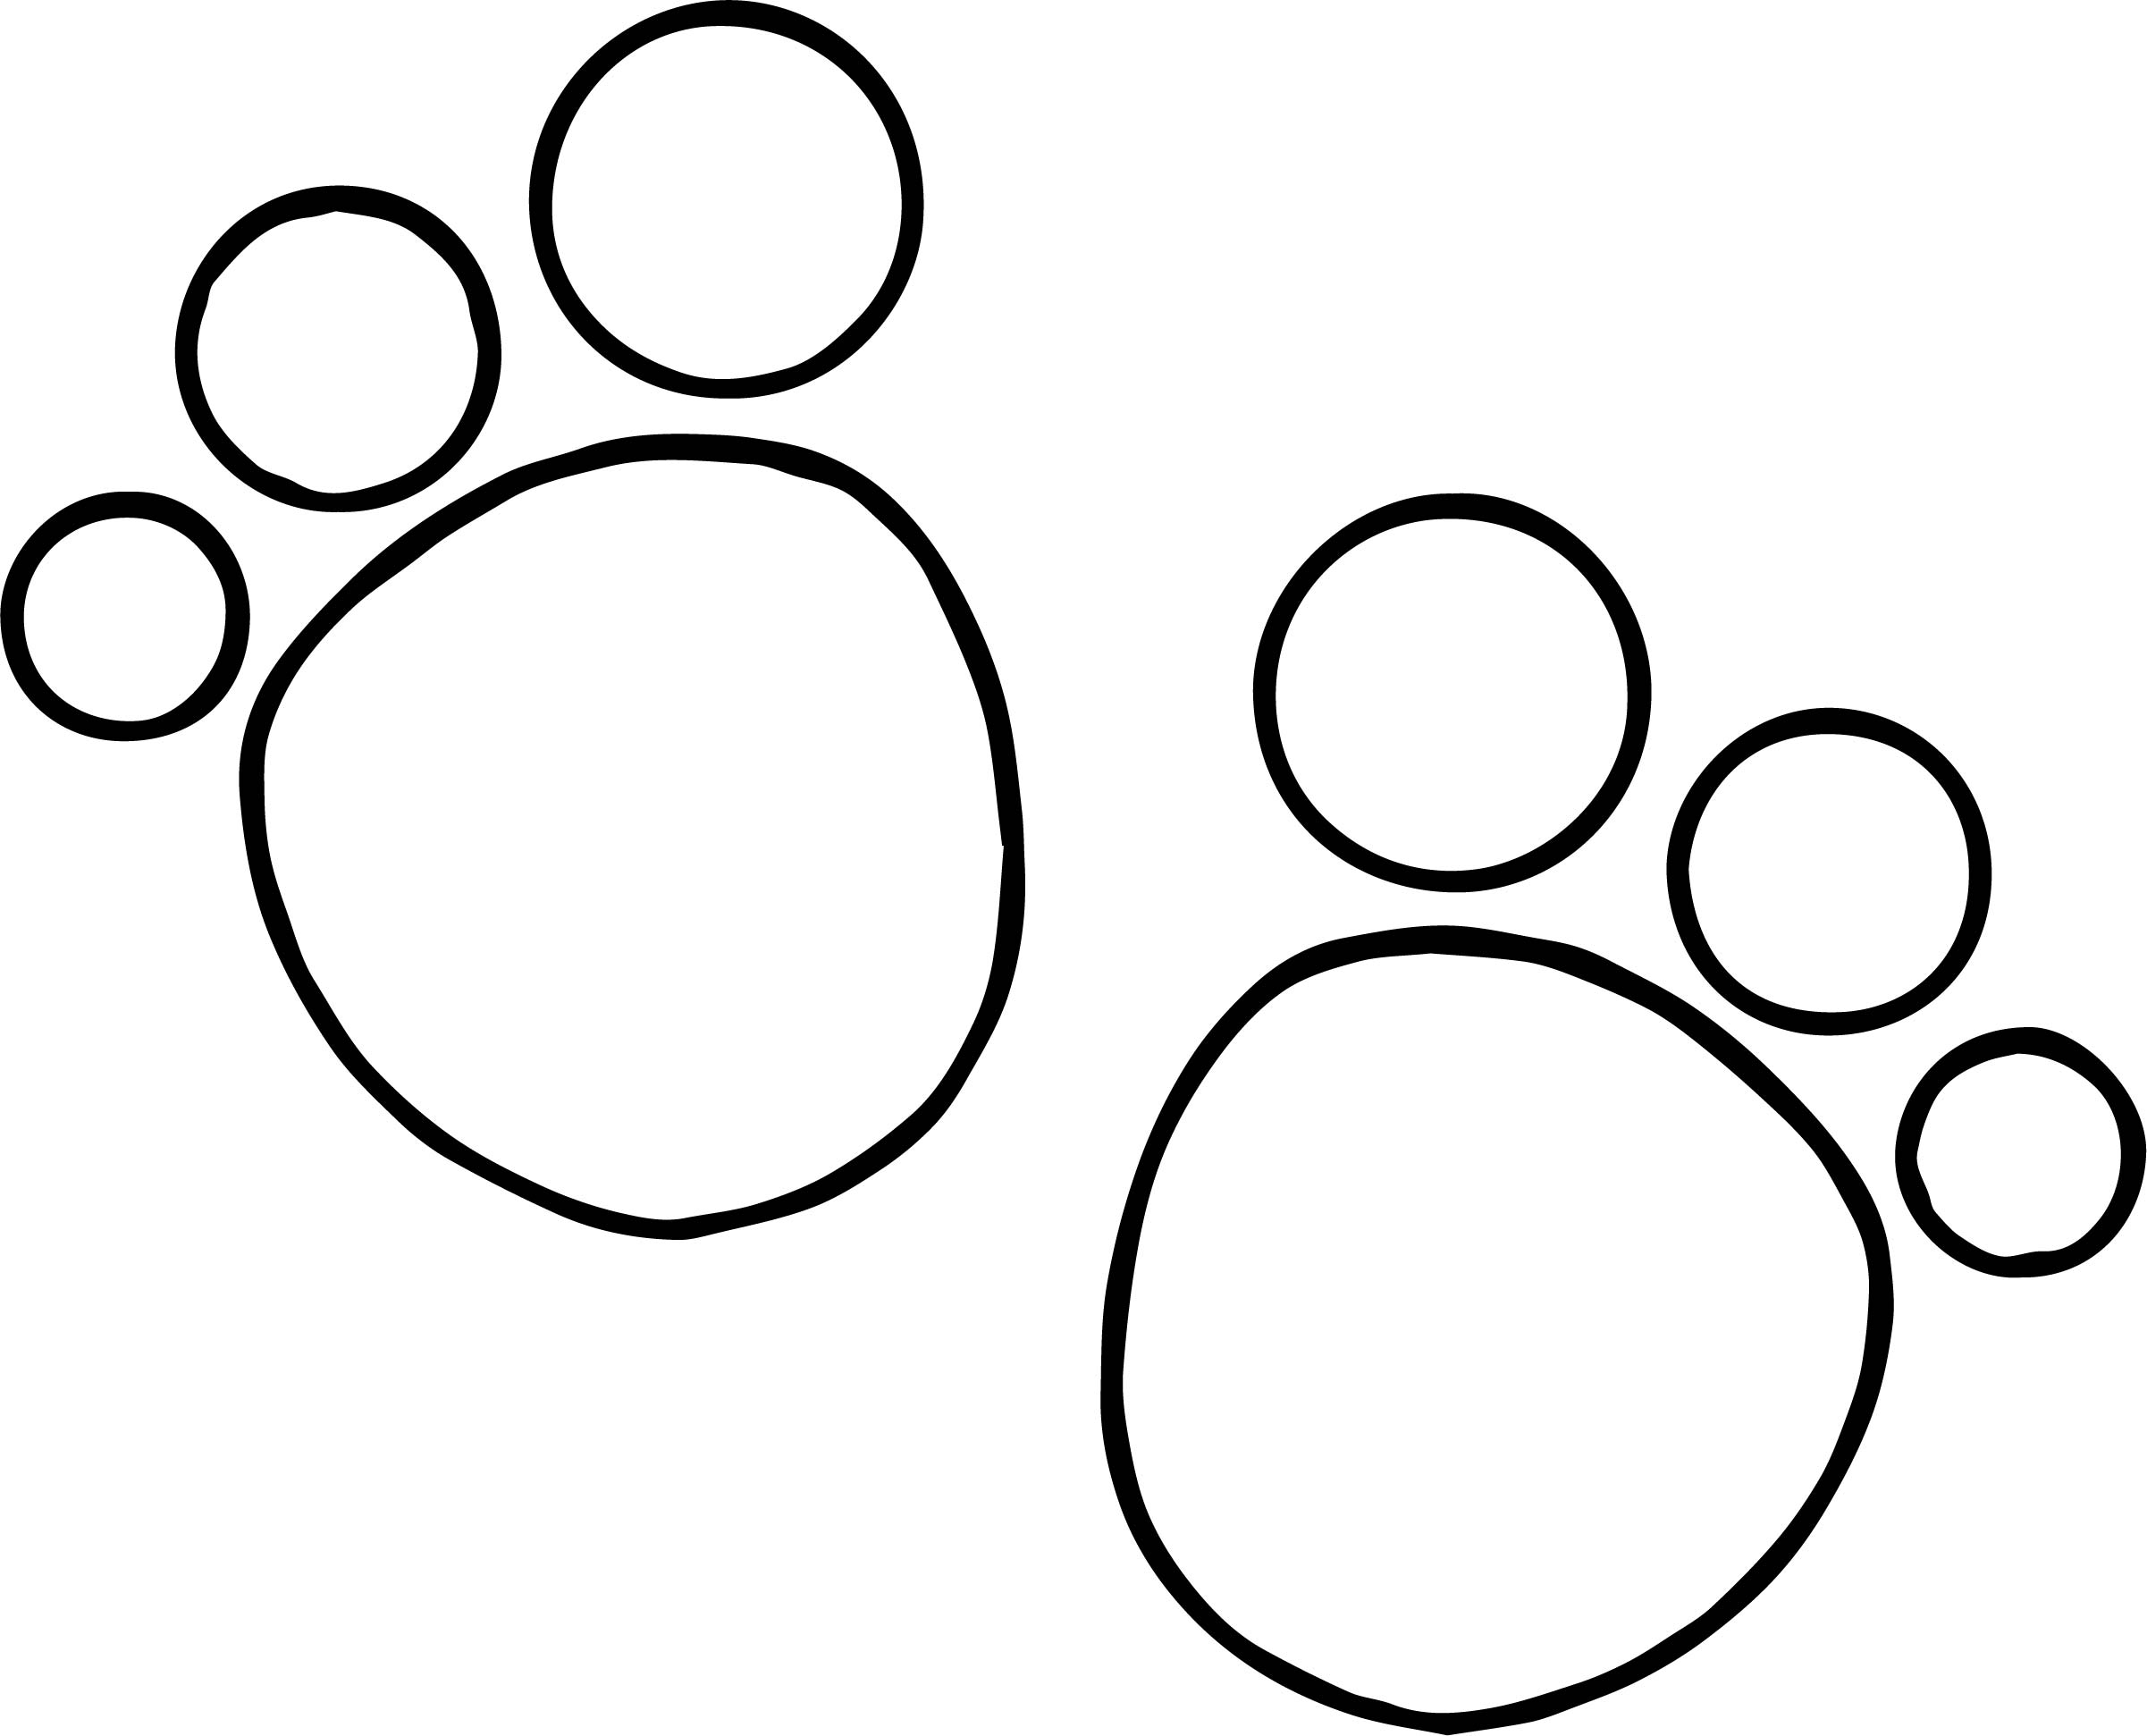 Blues Clues Foot Print Coloring Page